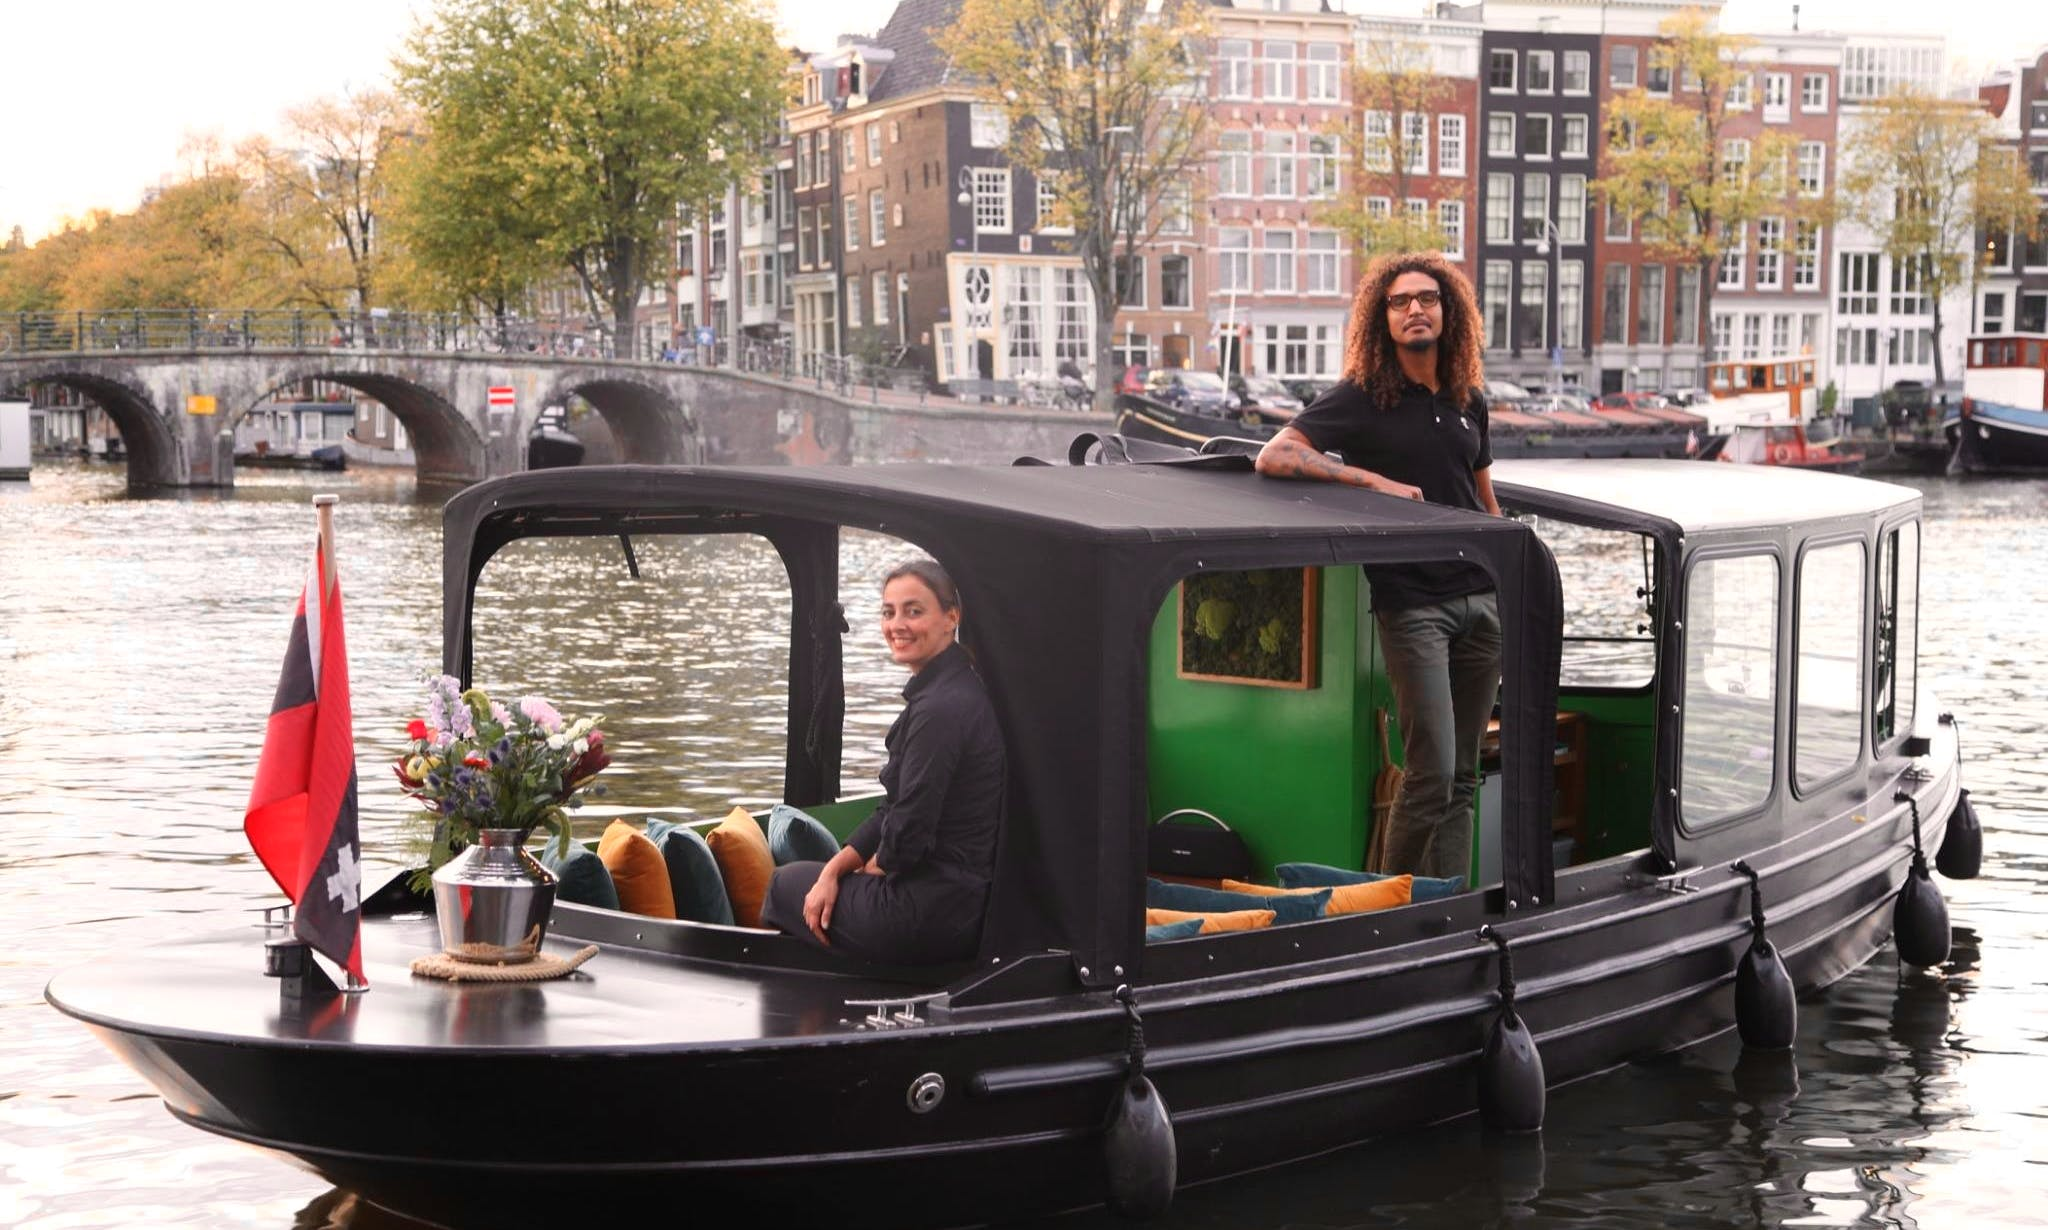 Hire a 12 Personprivate Boat With Captain and Enjoy Amsterdam Canal